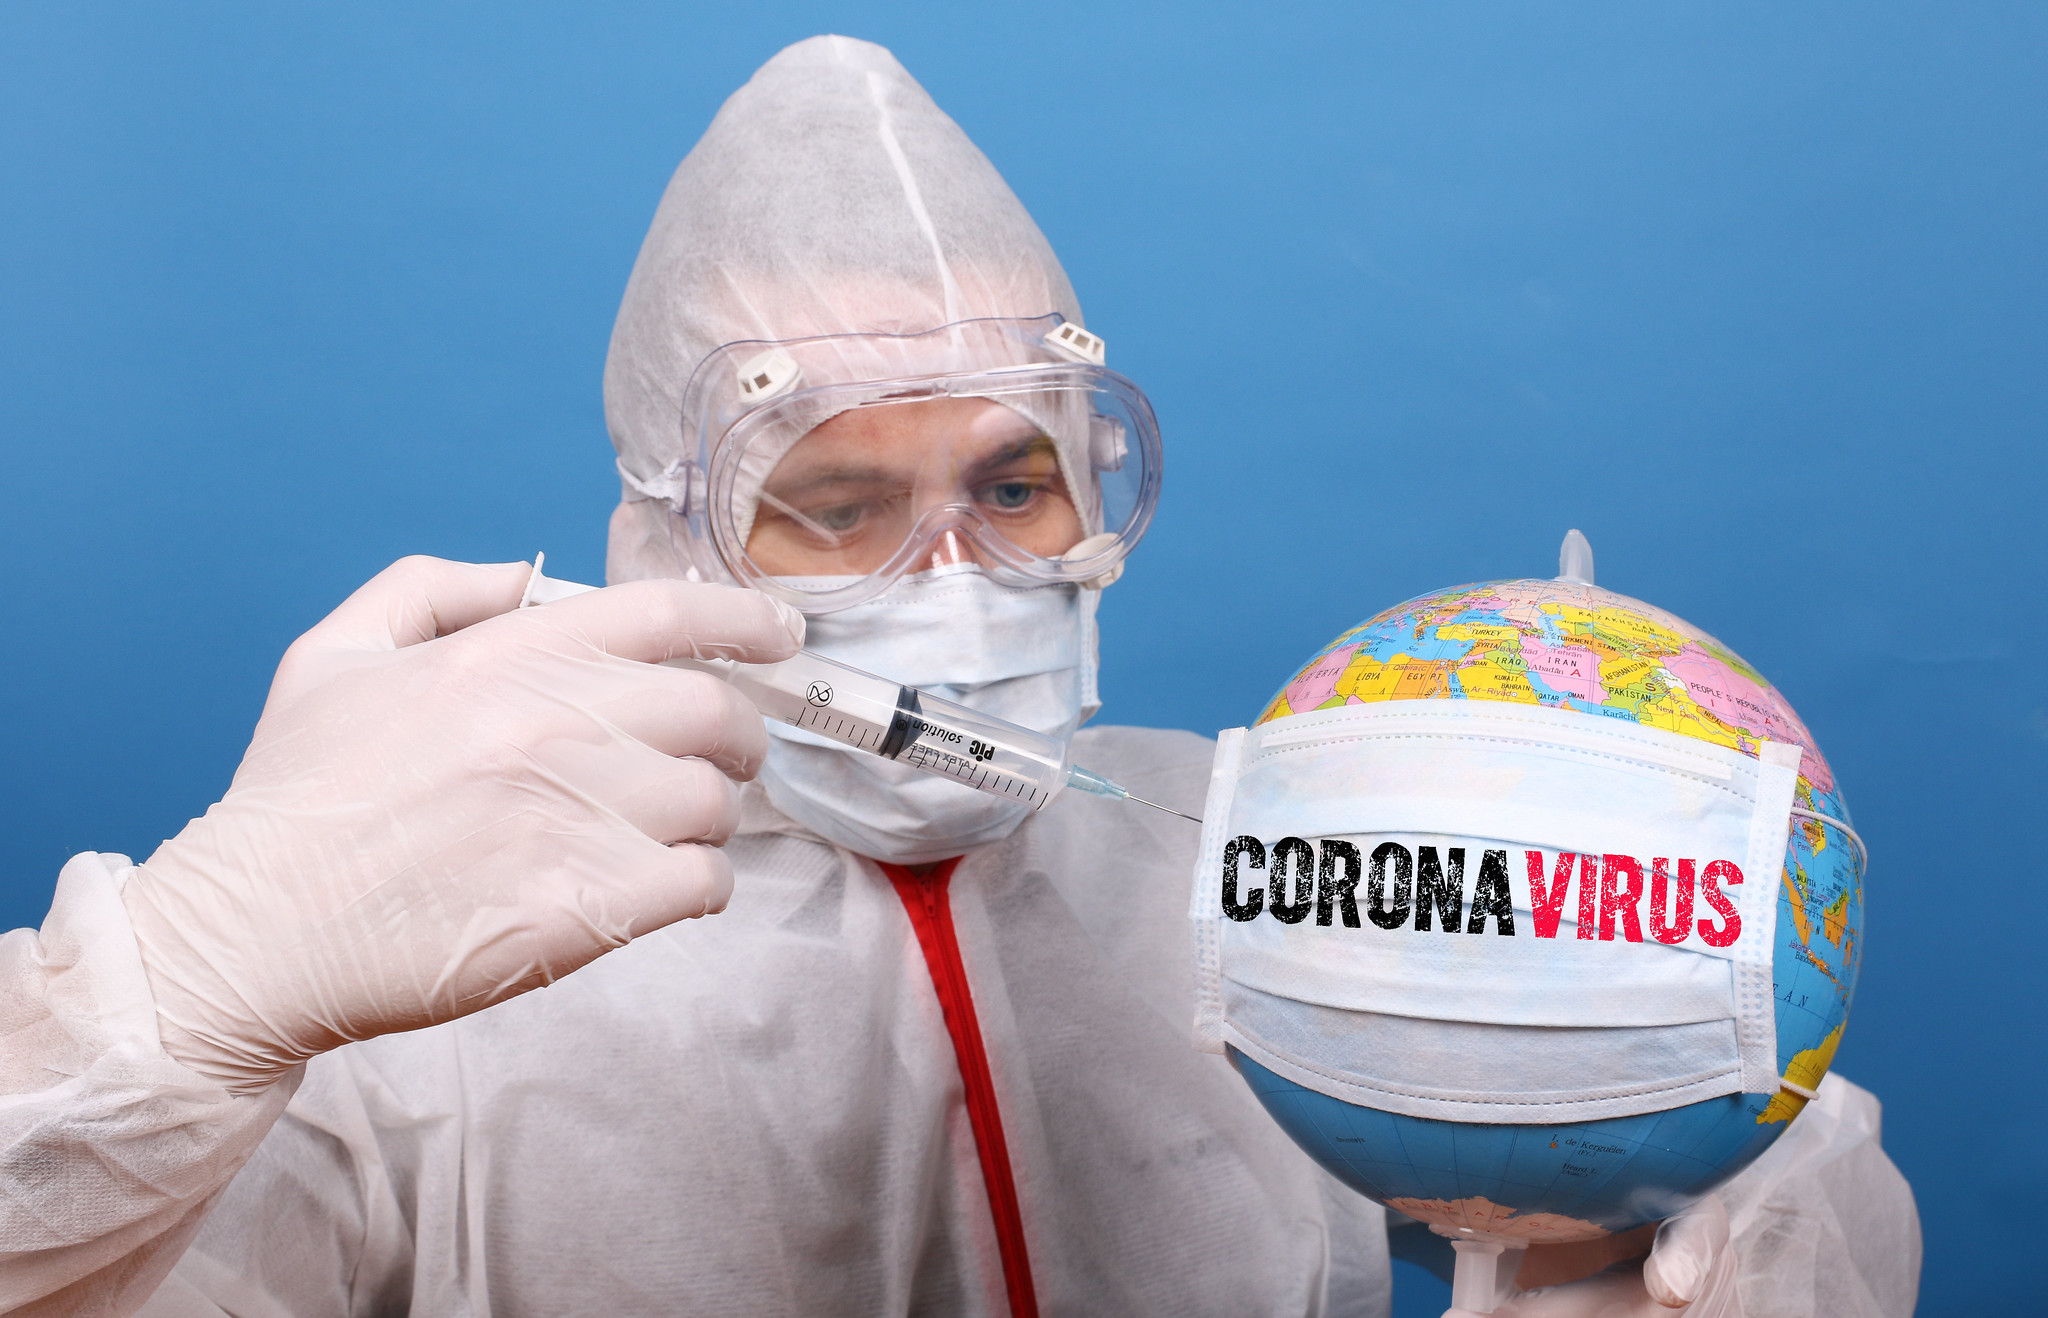 a man in an infectious disease suit injecting a globe with a vaccine